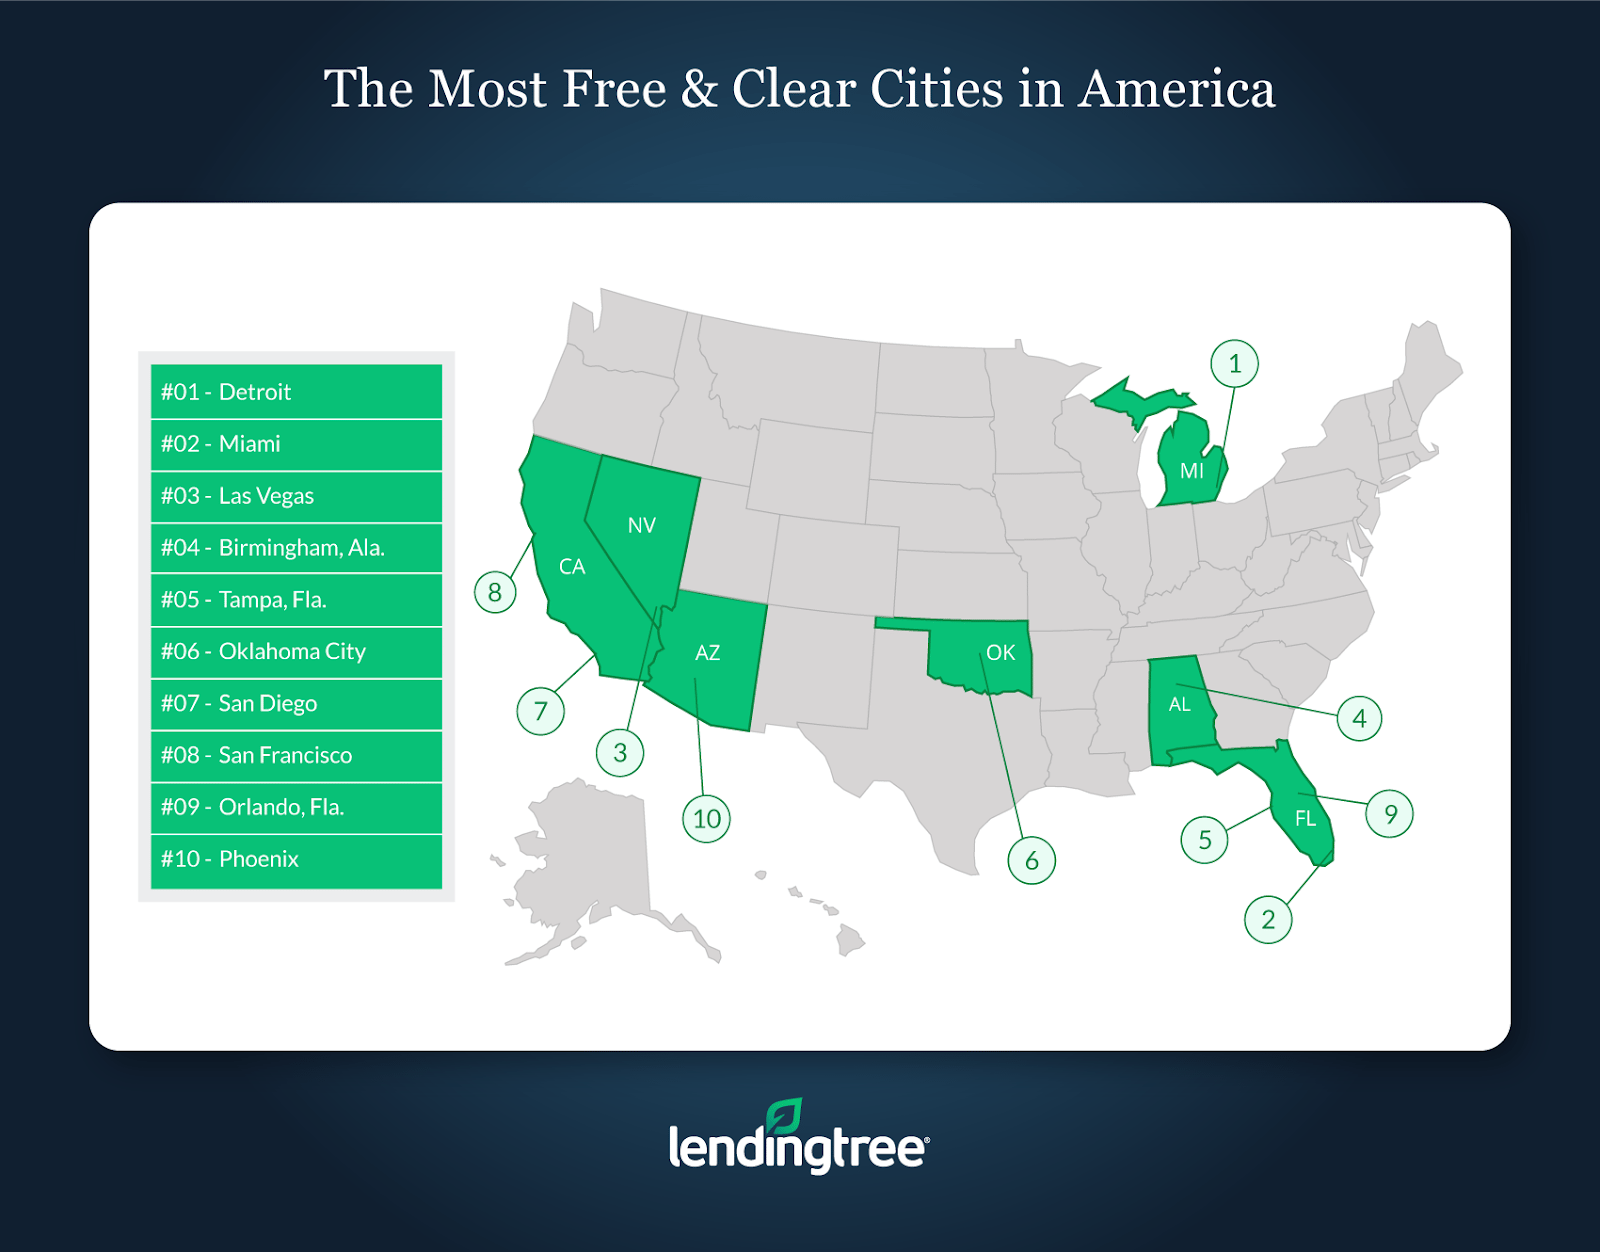 The Most Free and Clear Cities